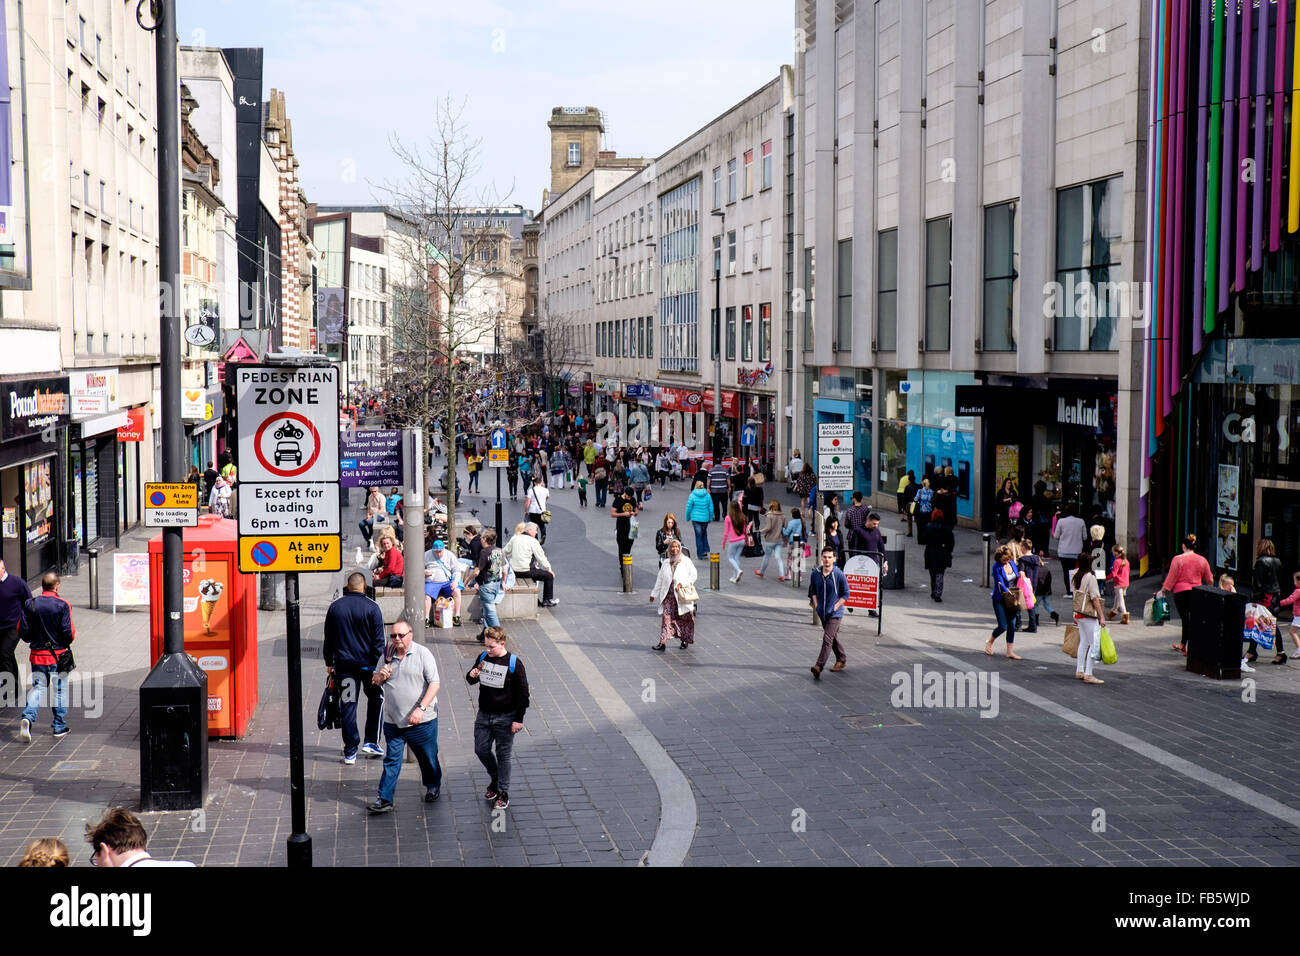 Lord Street pedestrianized shopping area, Liverpool, UK - Stock Image